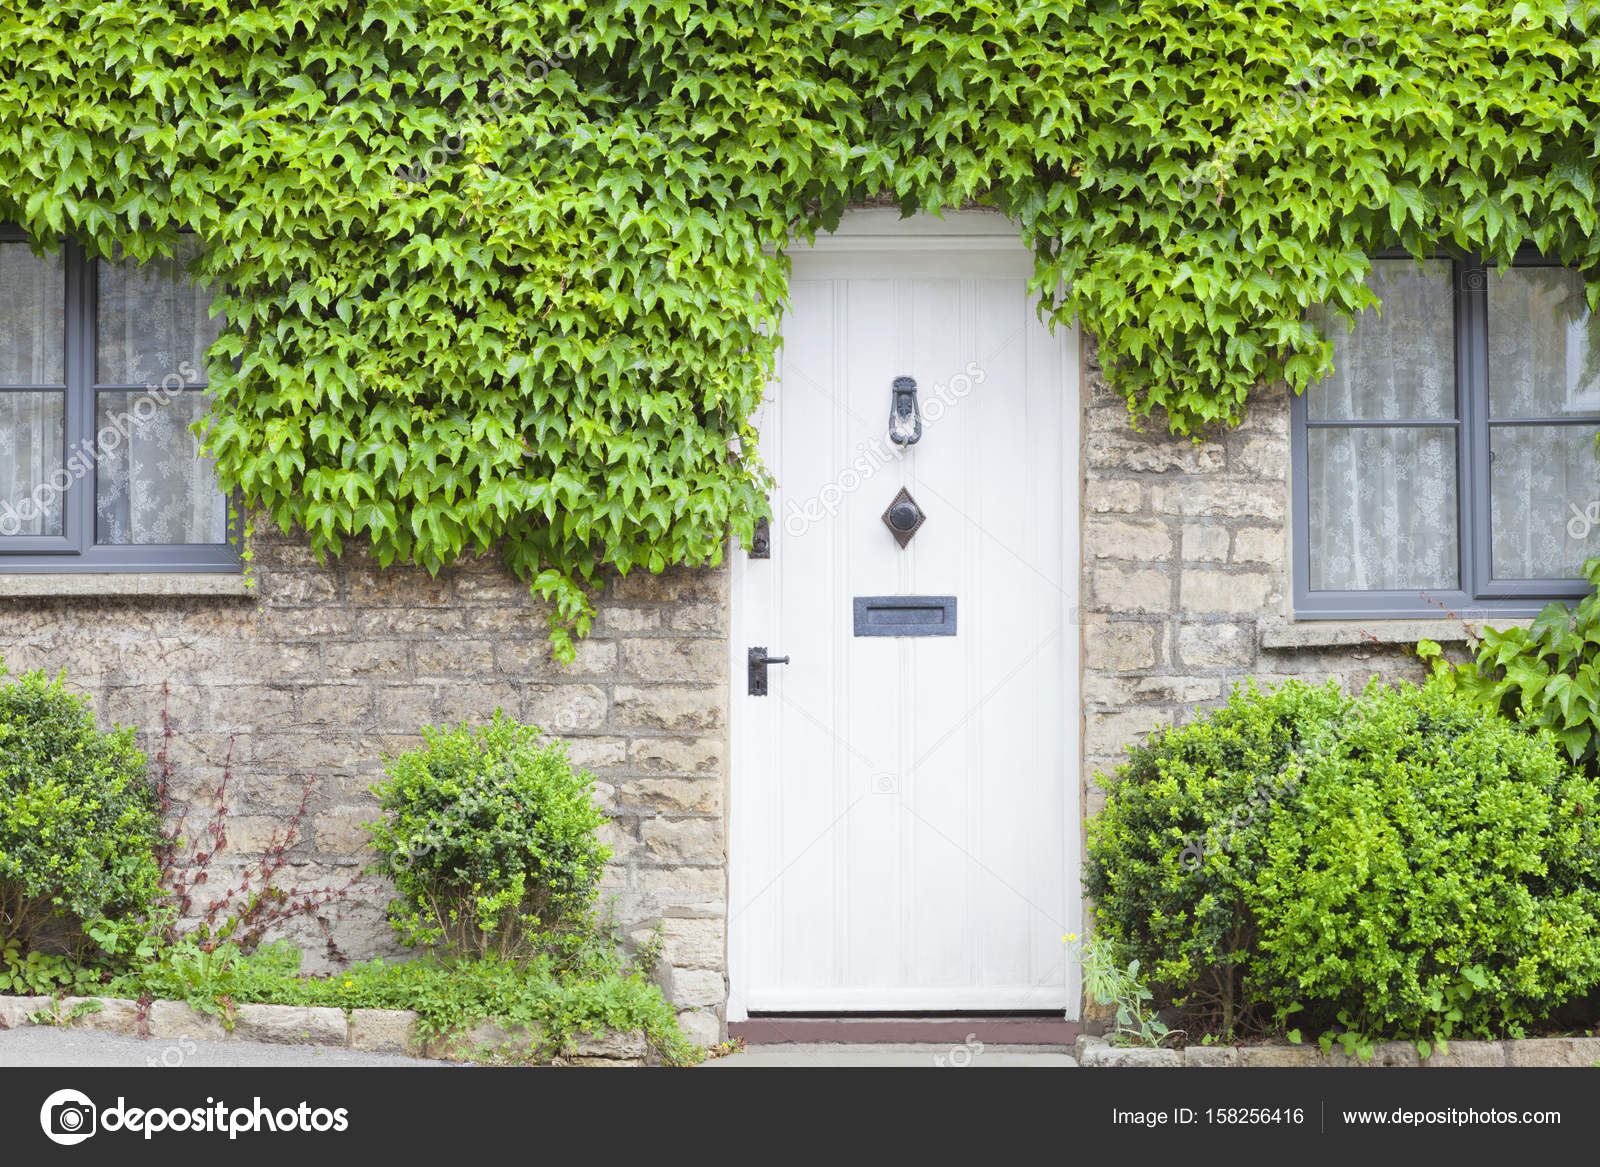 White wooden doors in an old traditional english stone cottage surrounded by climbing green vine plant